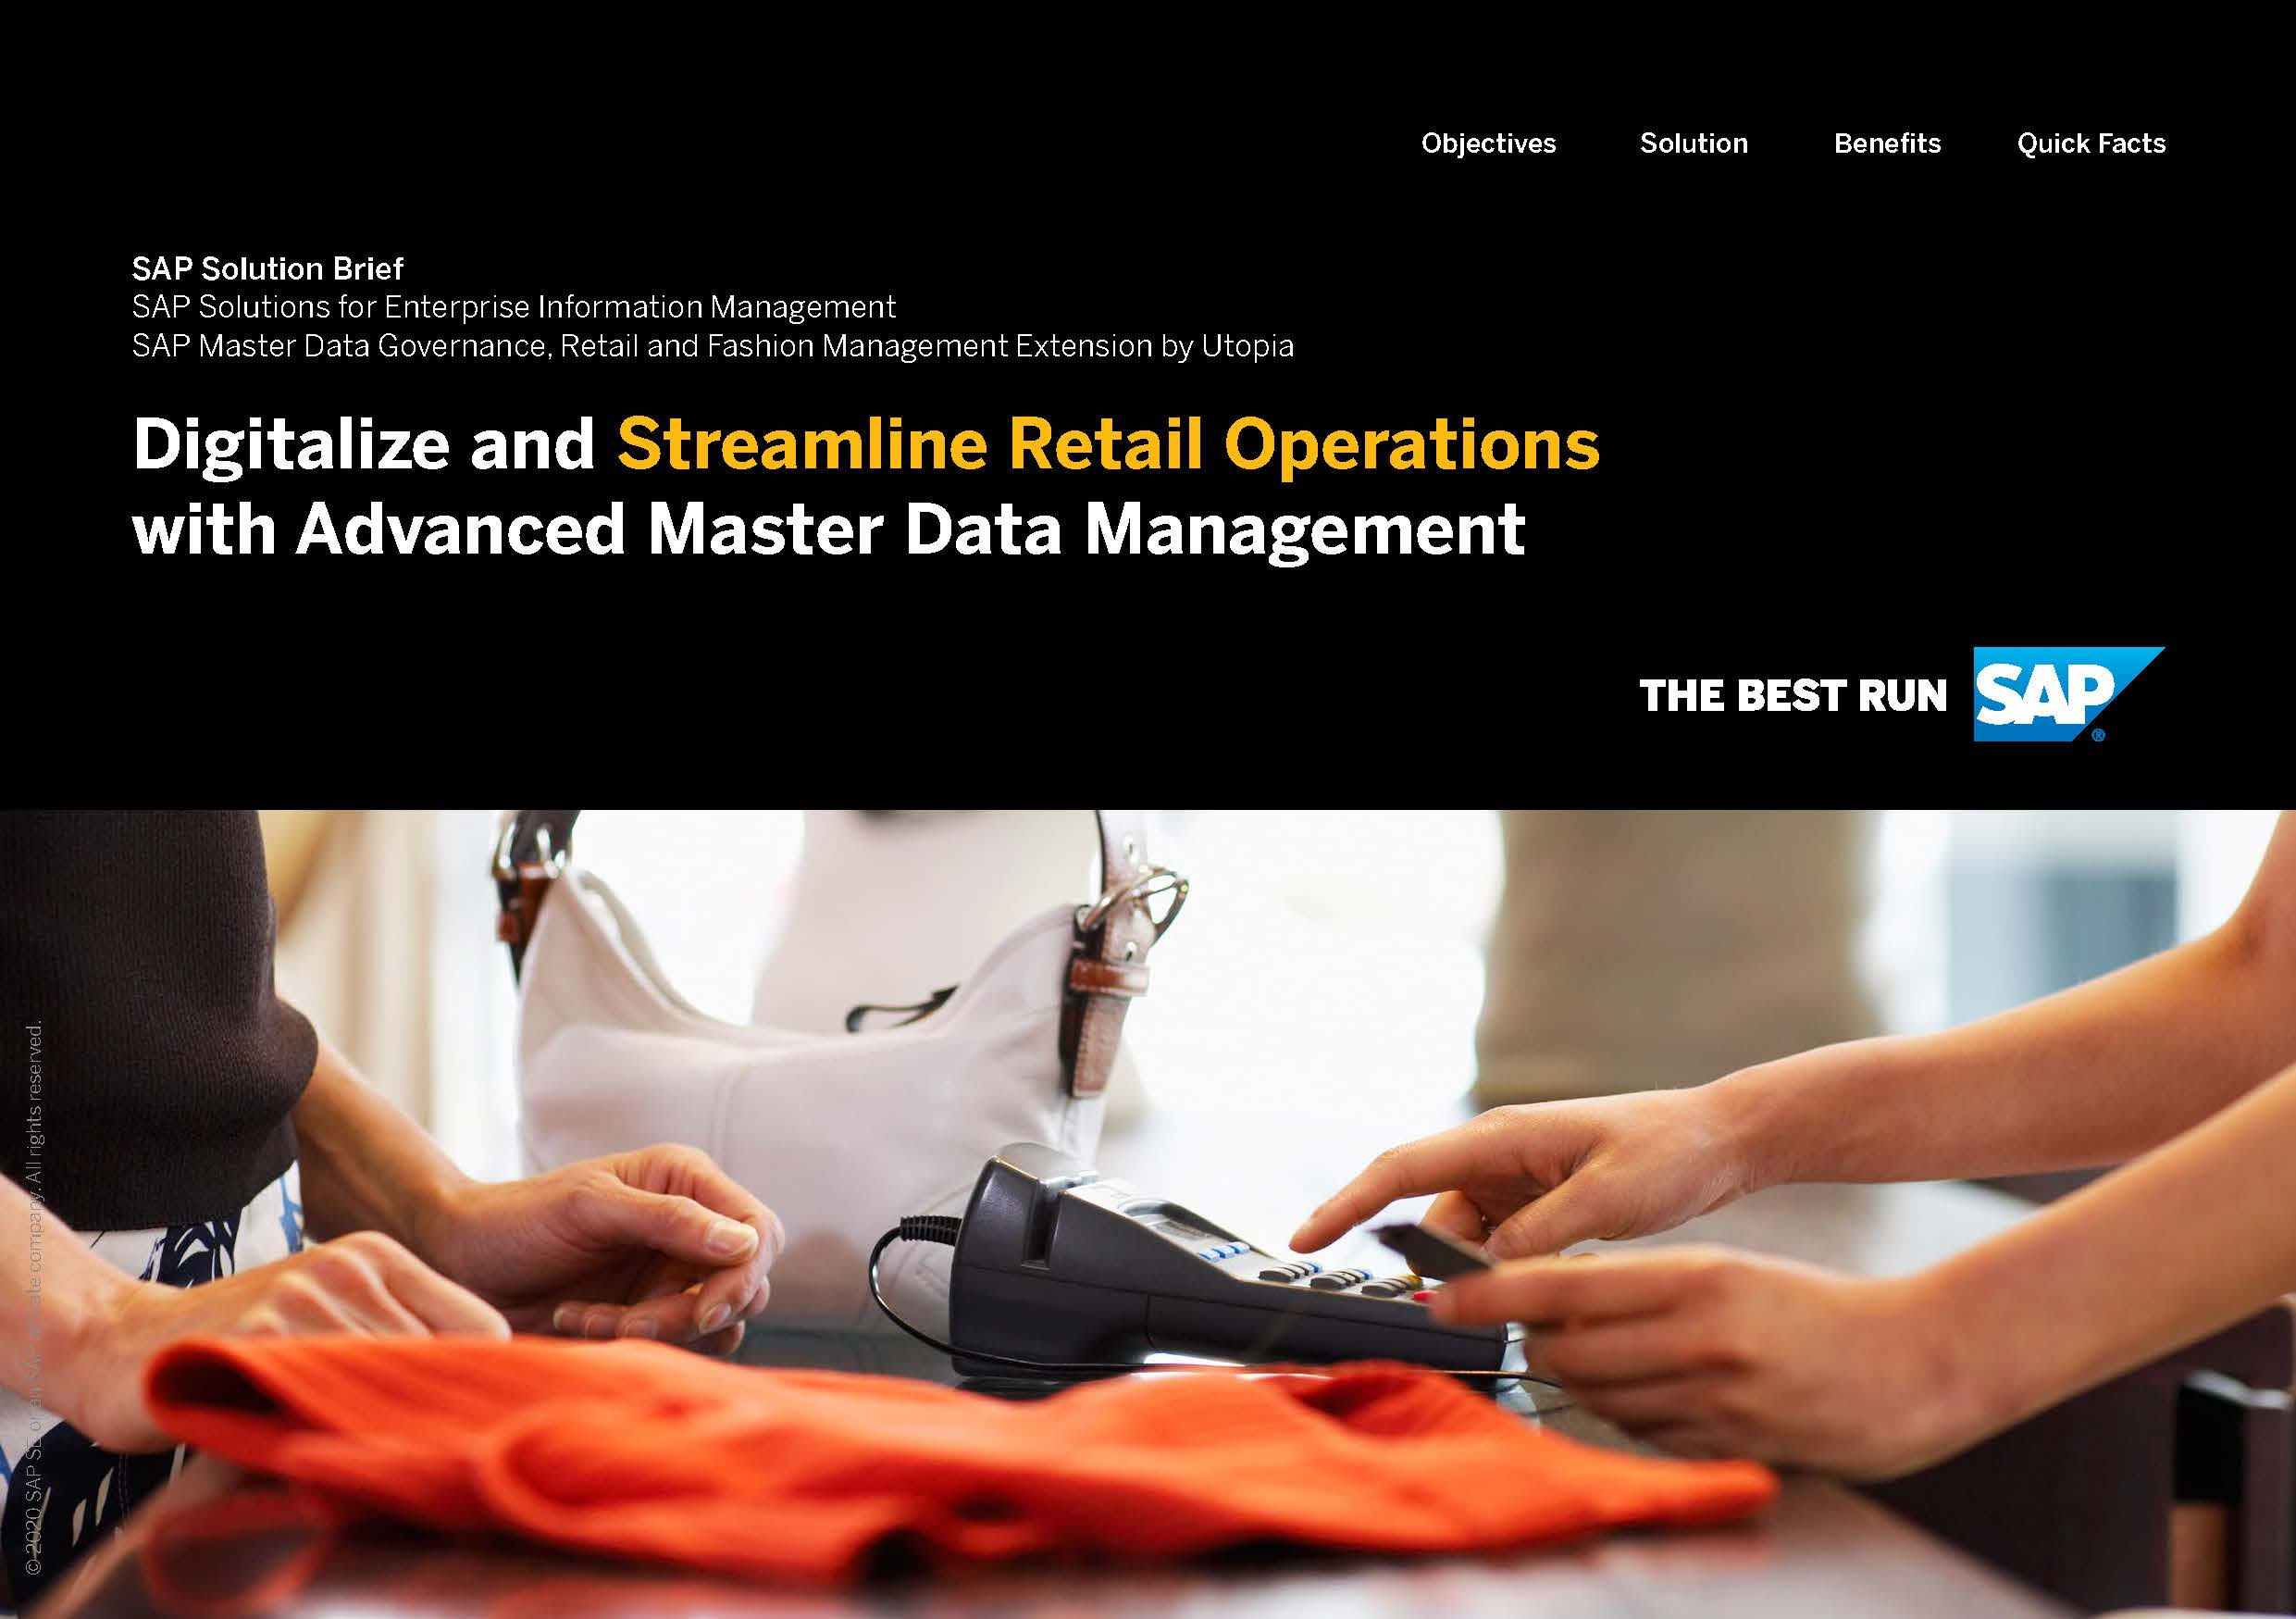 Digitalize and Streamline Retail Operations with Advanced Master Data Management (2)_Page_01